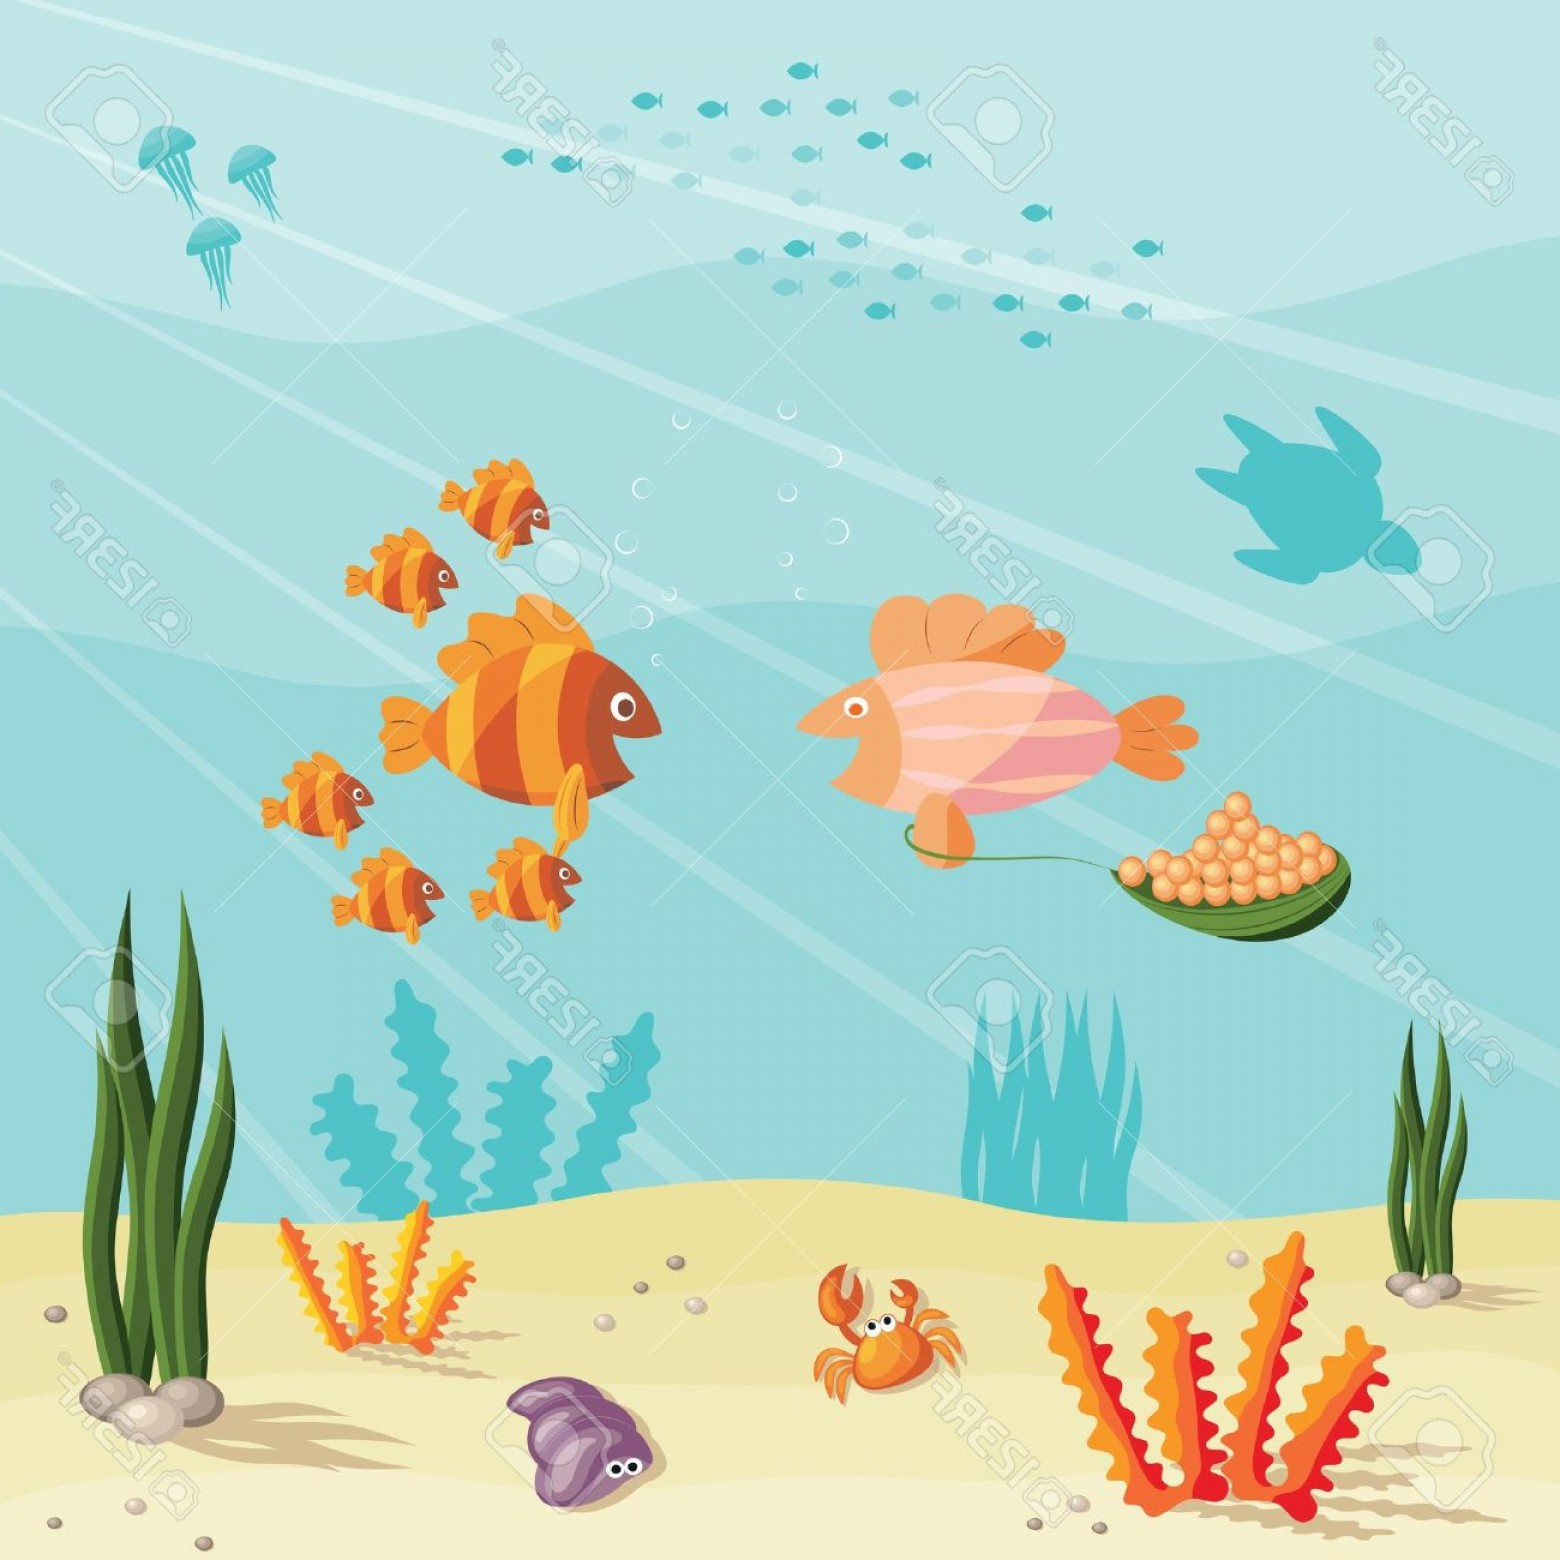 Underwater Sea Vector Art: Photoillustration Of An Underwater Ocean Scene With Small Cartoon Fishes